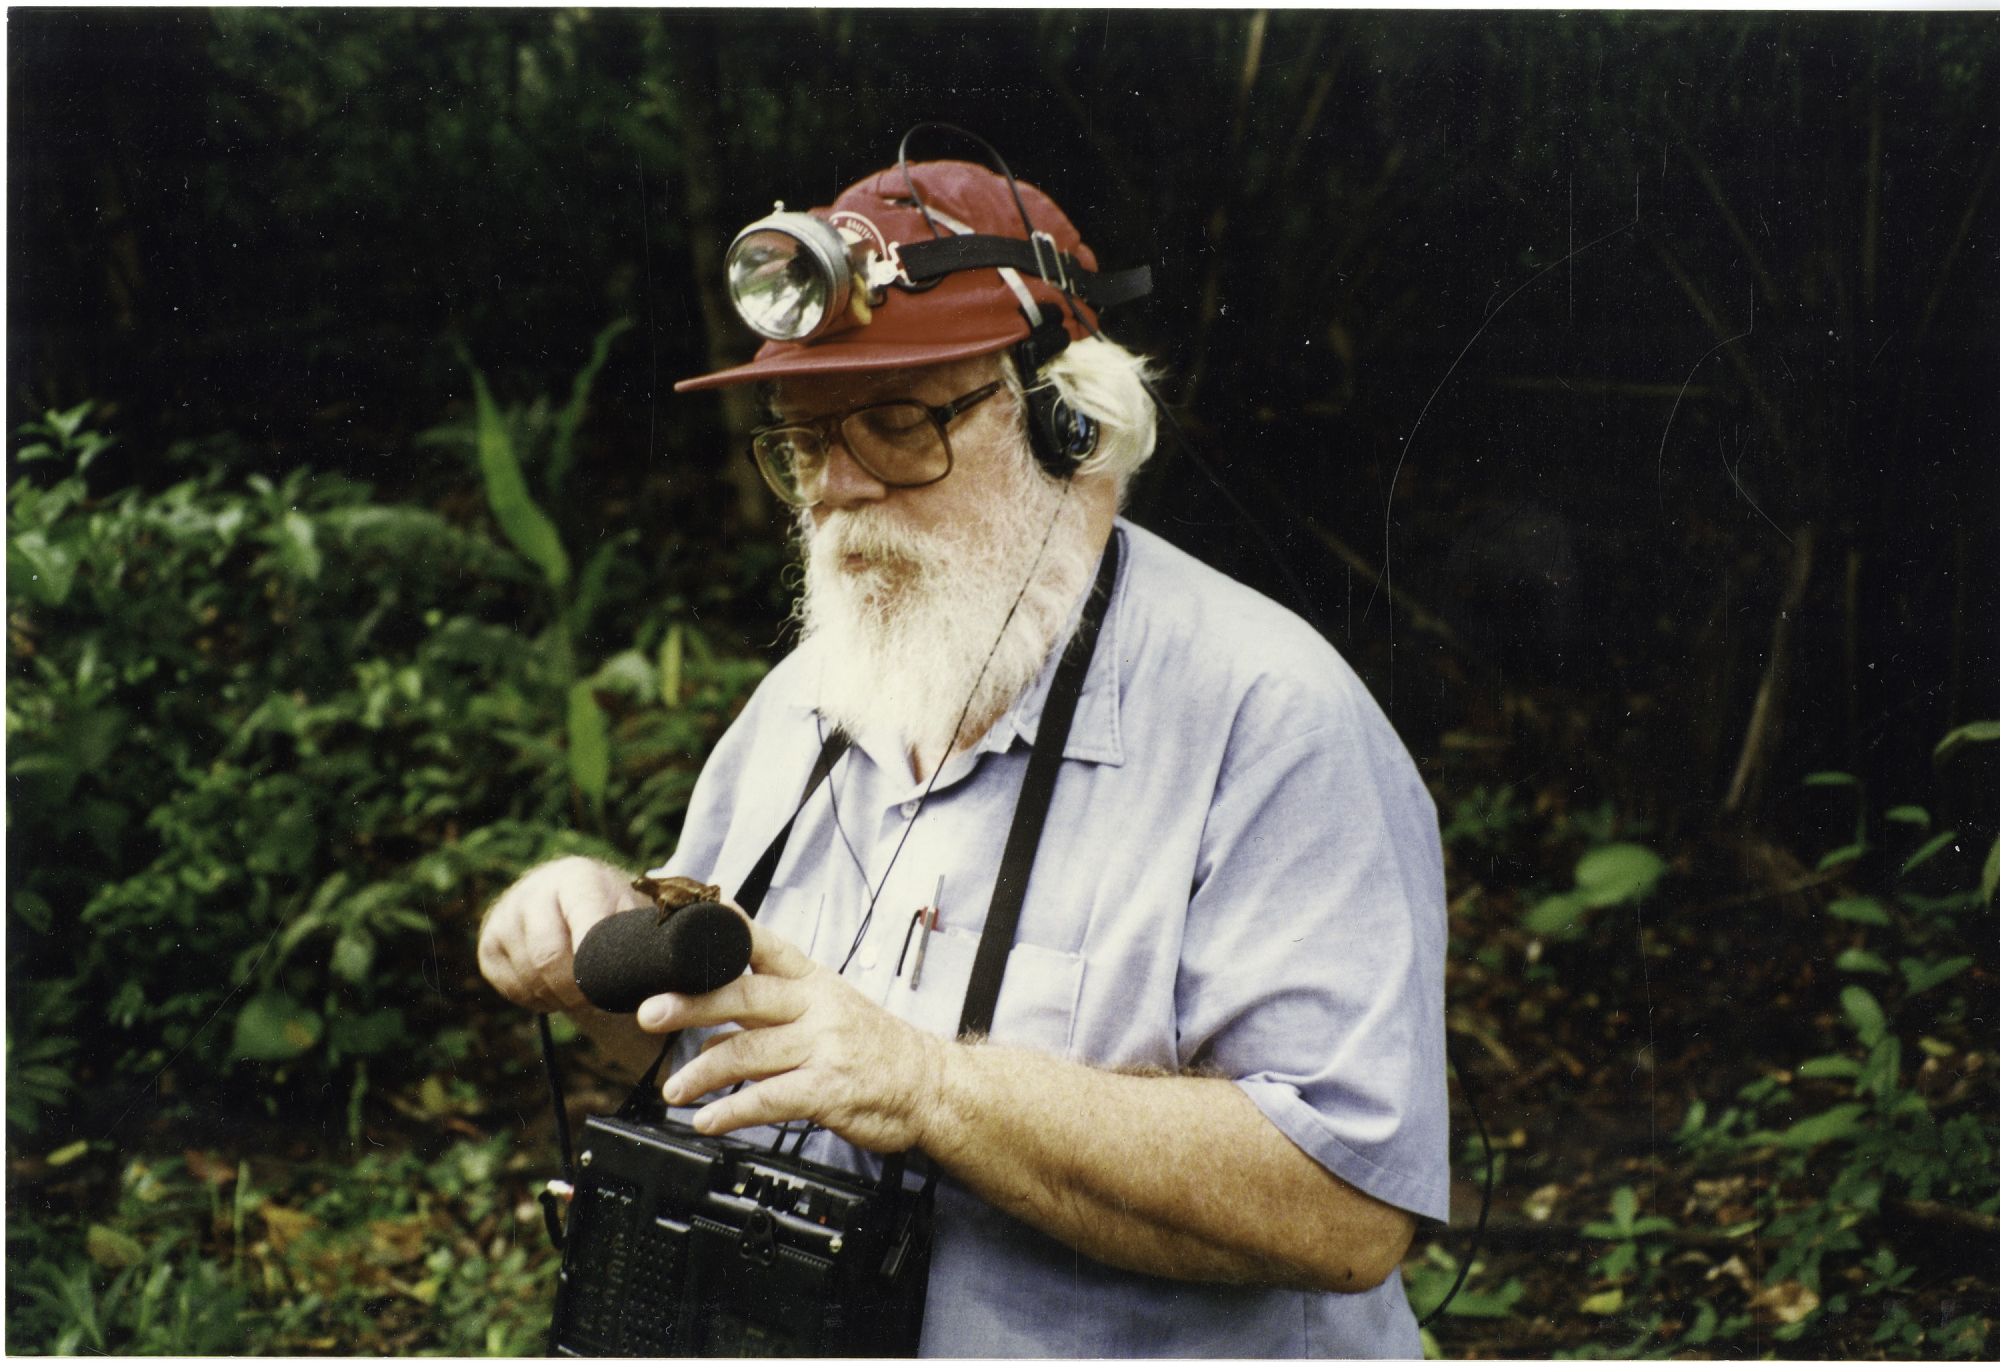 A. Stanley Rand, a herpetologist and Senior Biologist at STRI, capturing the sound of frogs in Panam